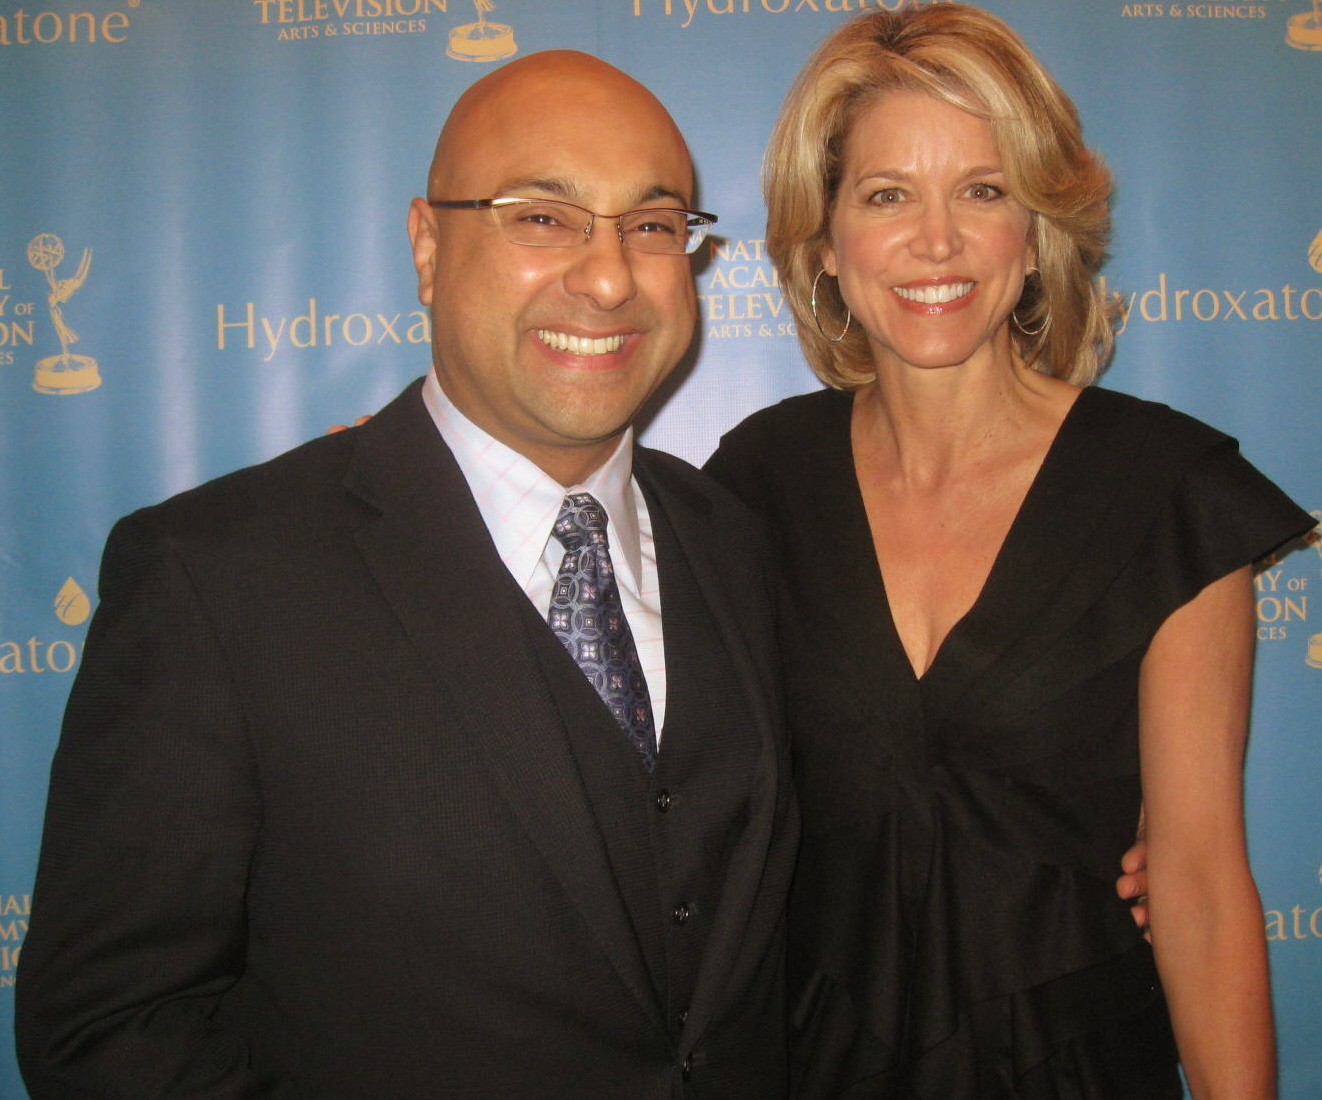 Top anchors ali velshi amp paula zahn grace the red carpet at the emmys